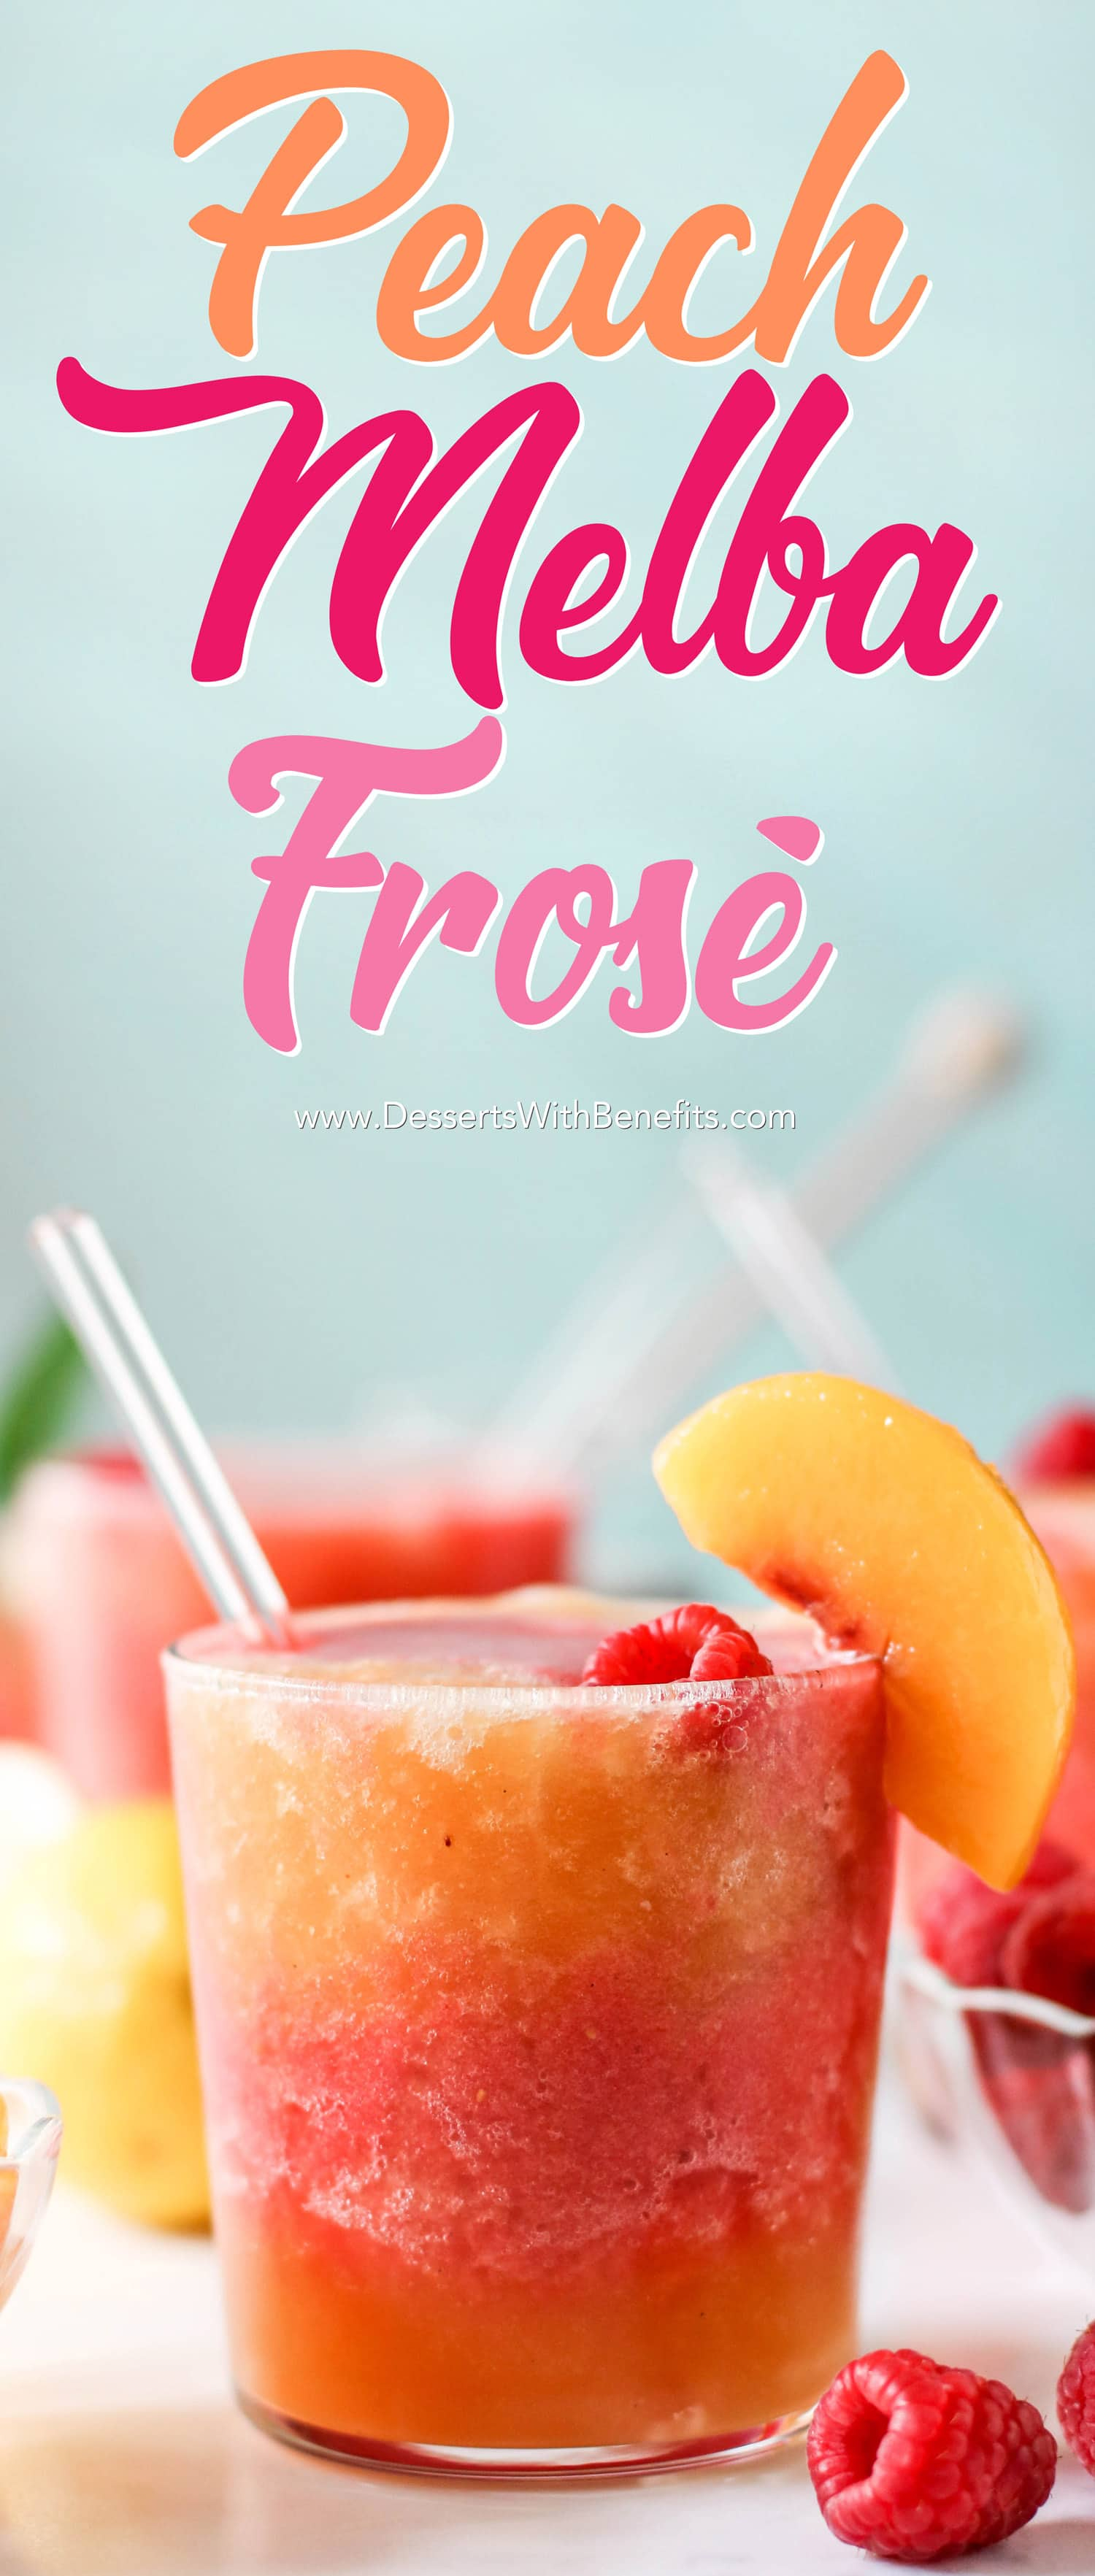 This Peach Melba Frosé is full of sweet peaches, tart raspberries, and good ol' pinot noir rosé (and no sugar added)! You only 5 ingredients to make this easy frose recipe. This is the perfect frosty, boozy treat!